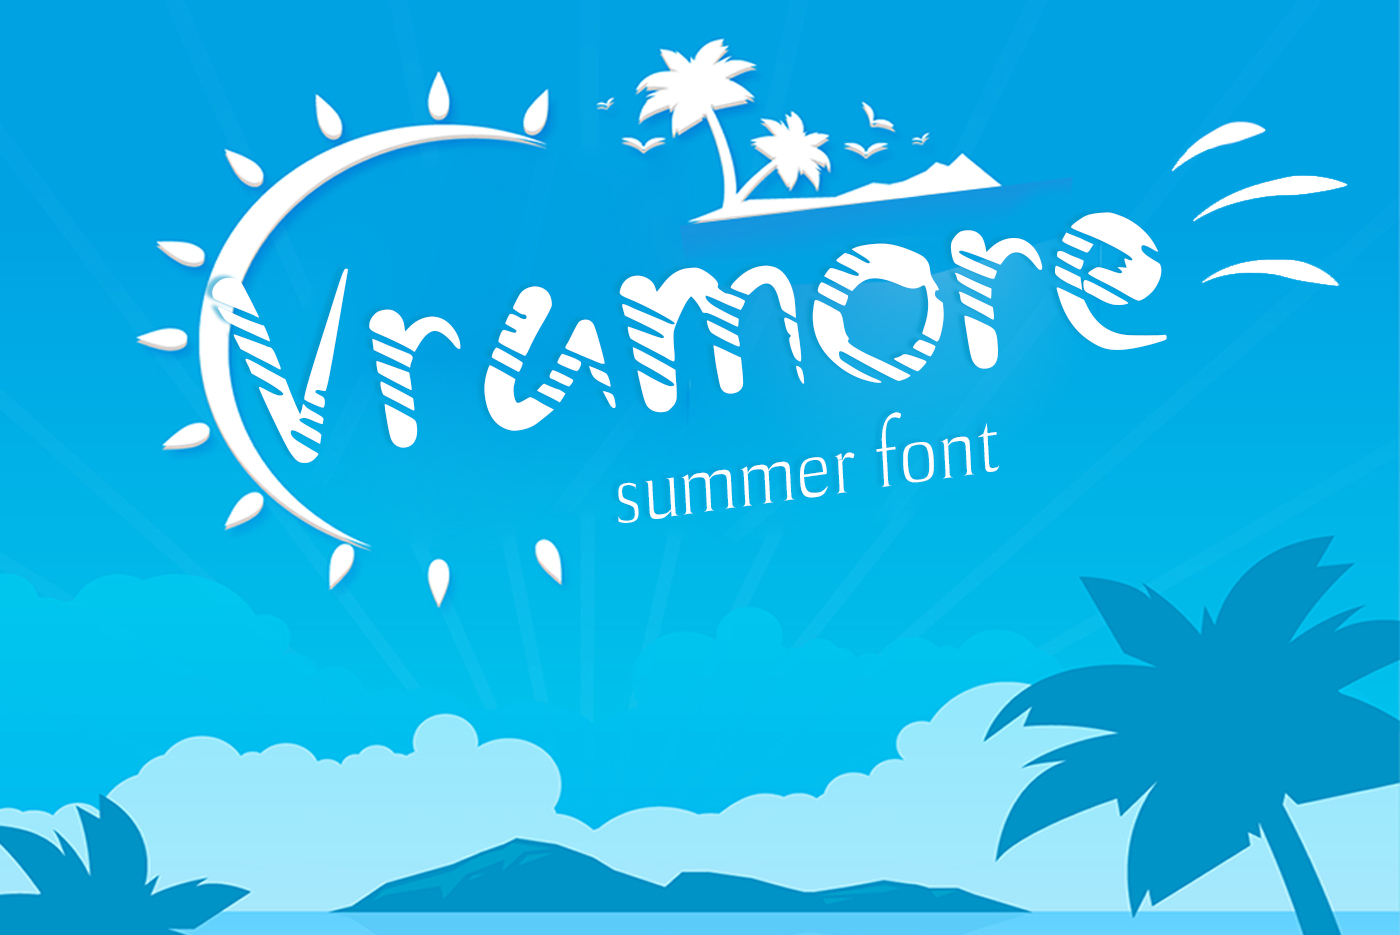 Vramore Summer Font example image 1